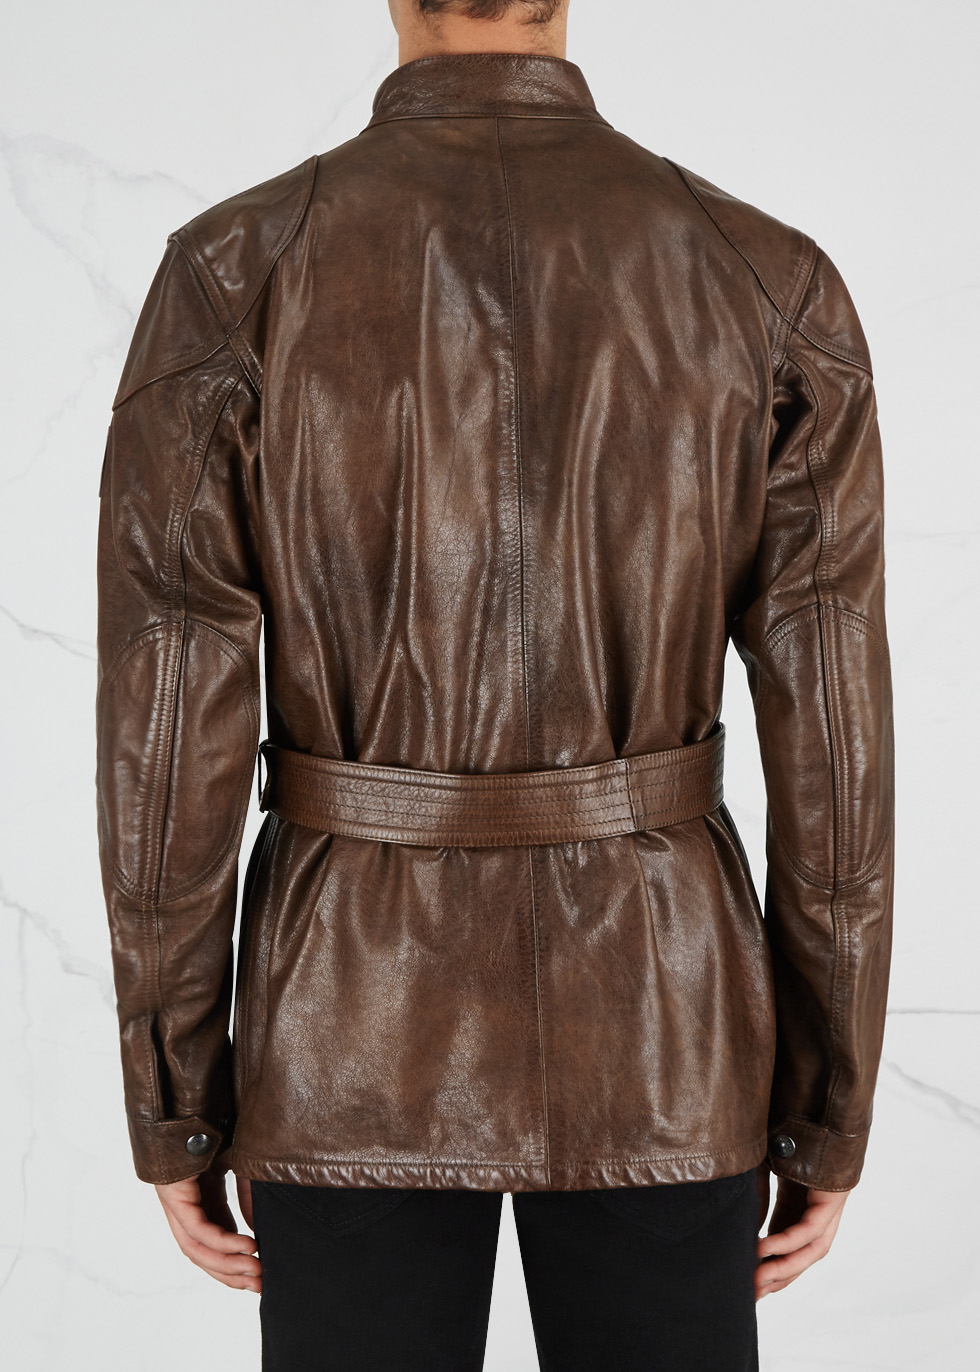 Panther brown leather jacket - Belstaff